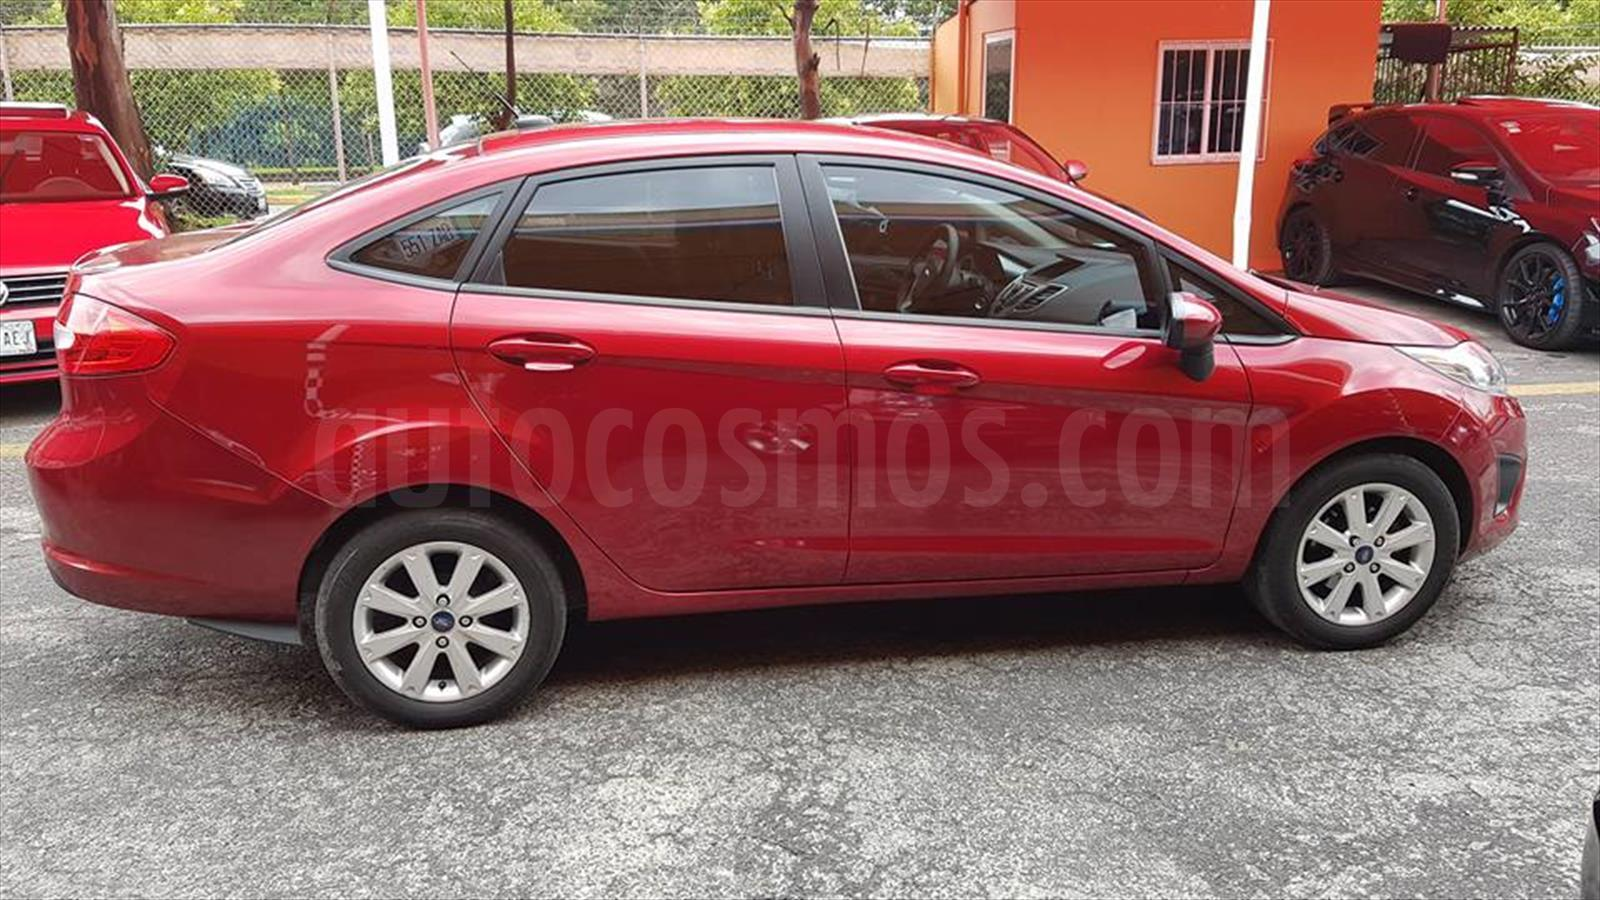 Venta autos usado - Estado de Mexico - Ford Fiesta Sedan